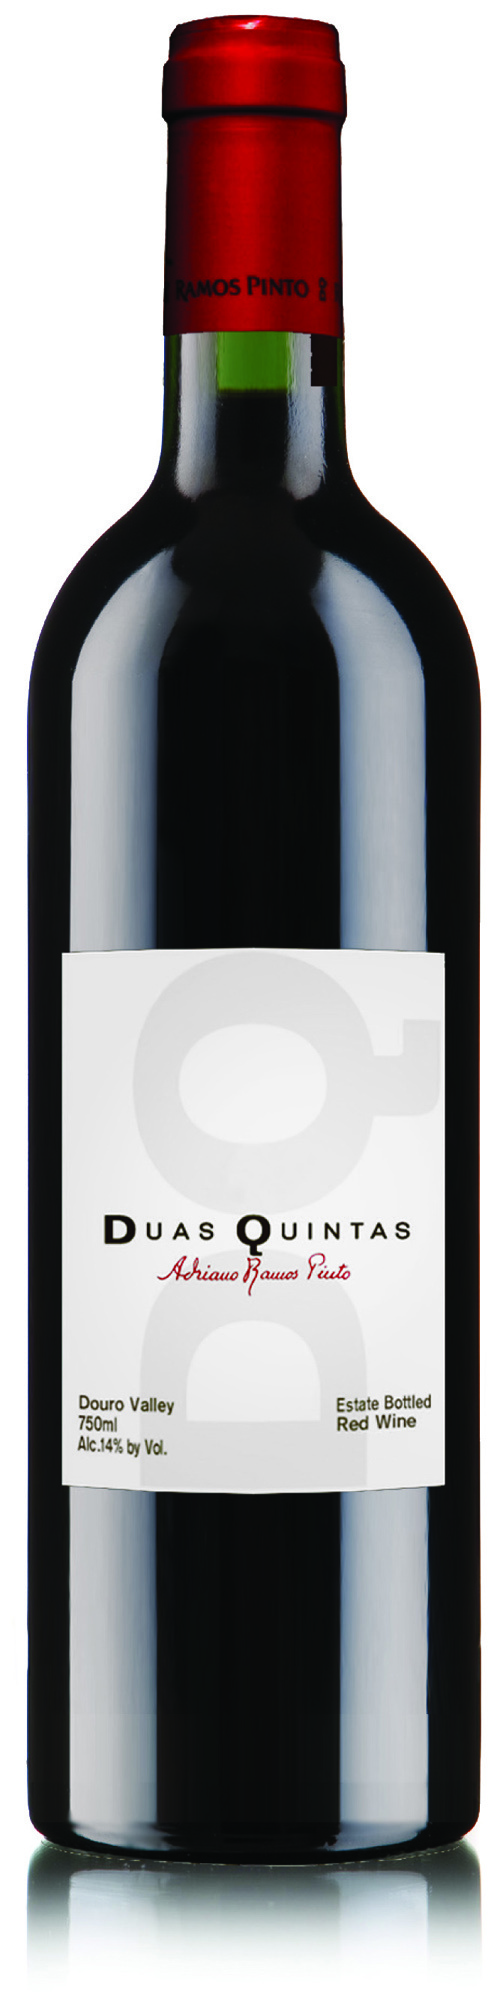 Ramos Pinto Duas Quintas Douro Red 2009 - The wine is clear and bright, and has an intense, dark garnet color. The vivid, floral aroma at the beginning is subsequently replaced by red fruit, strawberry, raspberry and fig aromas with light undertones of vanilla and dark chocolate. In the mouth, the wine is very fresh and soft, with silky tannins, and is balanced and easy to drink. $14.99